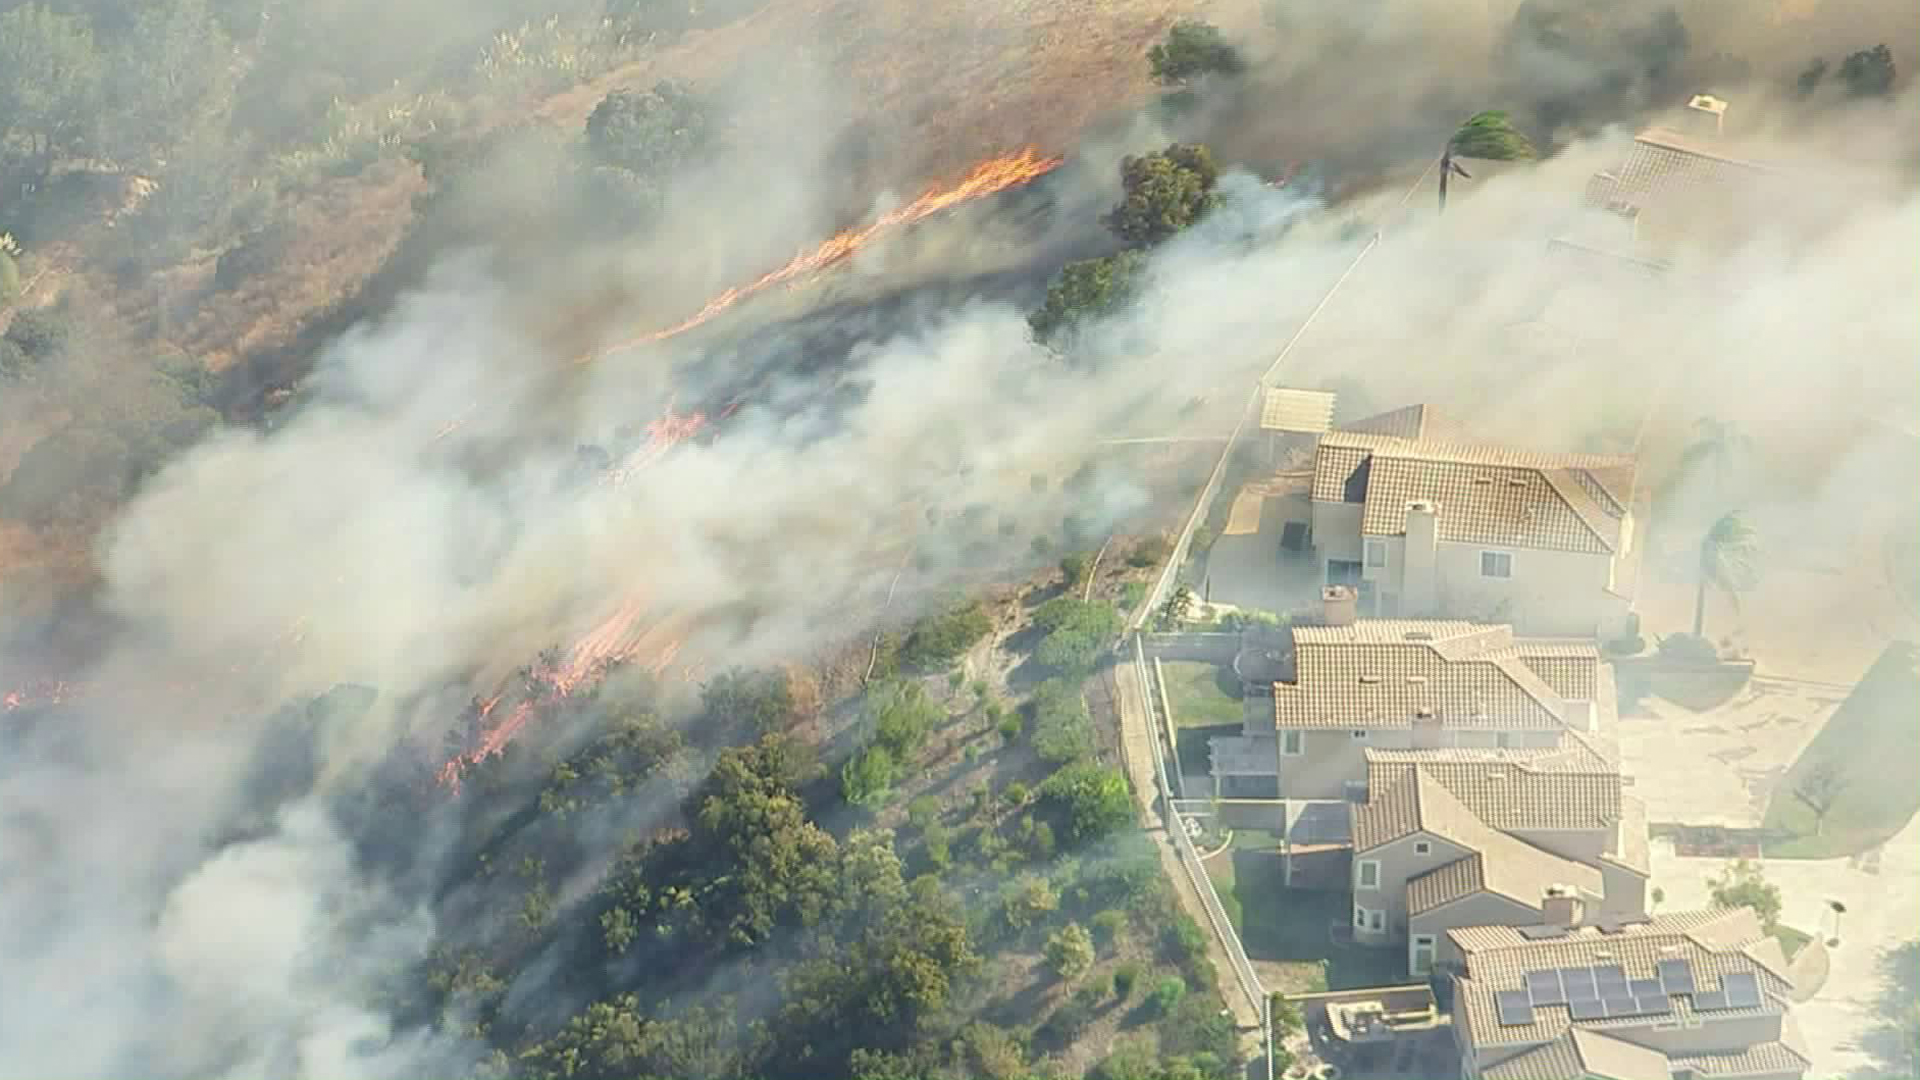 The Canyon Fire 2 burns toward homes in Anaheim on Oct. 9, 2017. (Credit: KTLA)